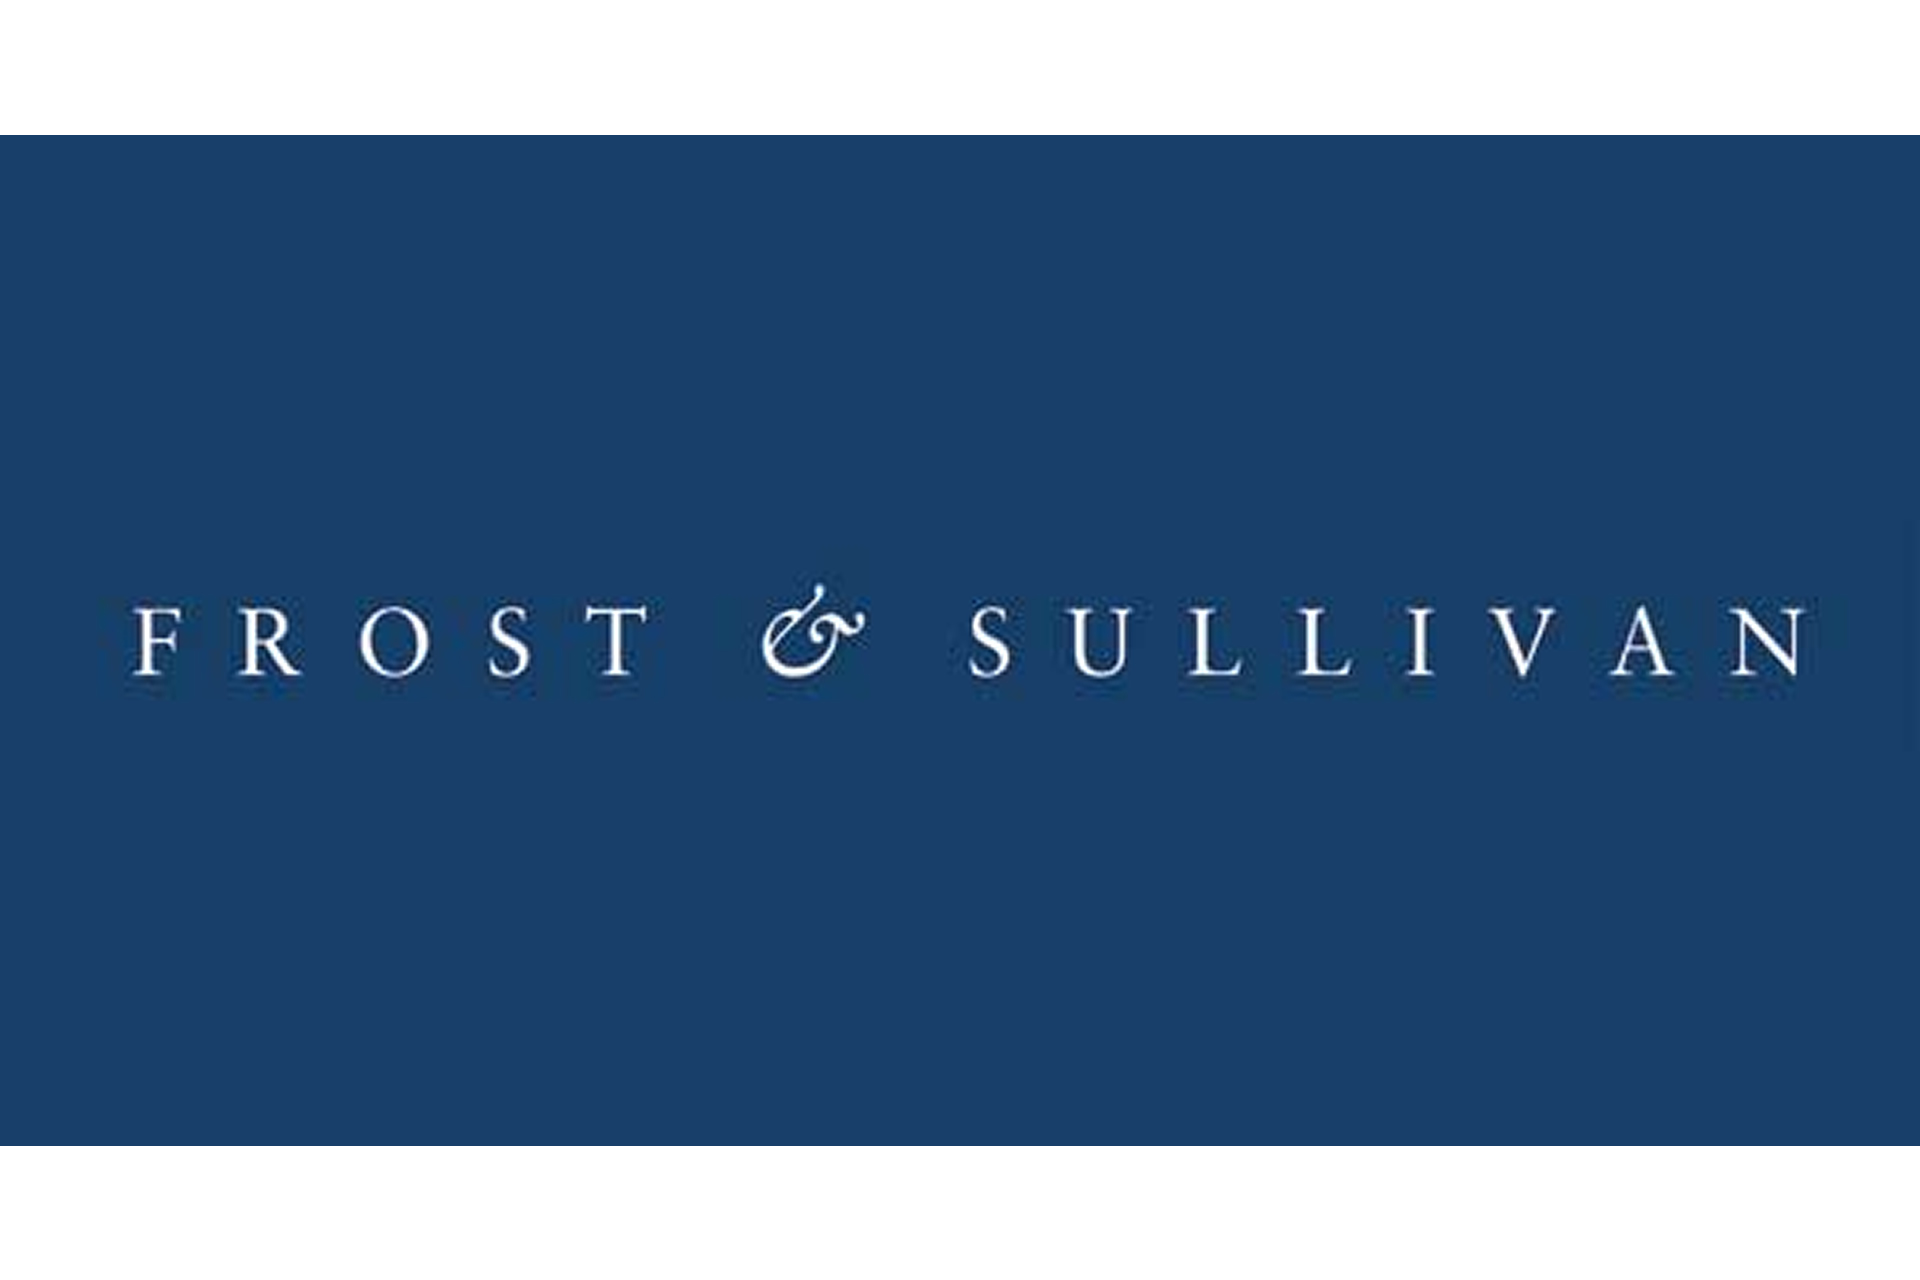 Bayshore Networks Applauded by Frost & Sullivan for Its Comprehensive Cyber Security Platform, Lighthouse